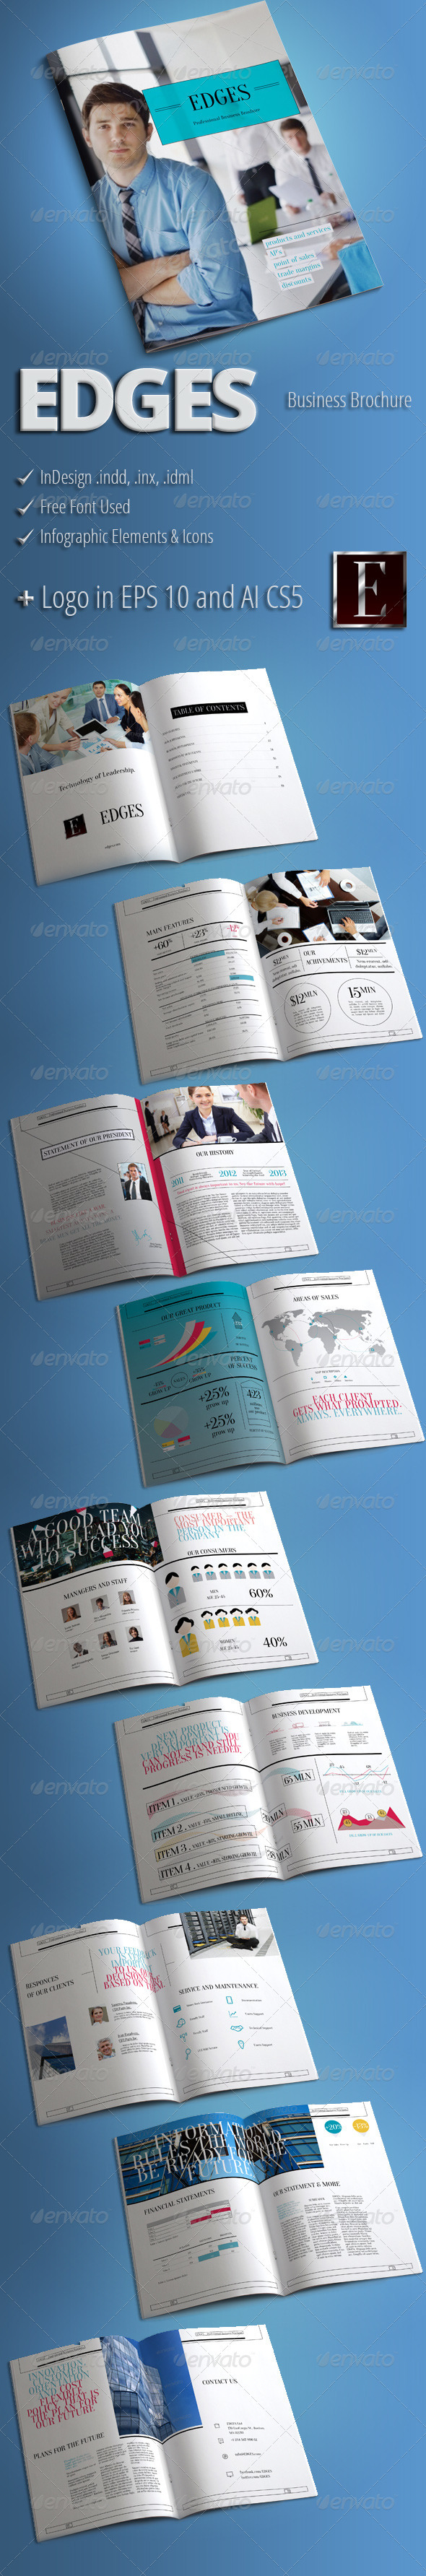 GraphicRiver EDGES Modern Business Brochure 3676272